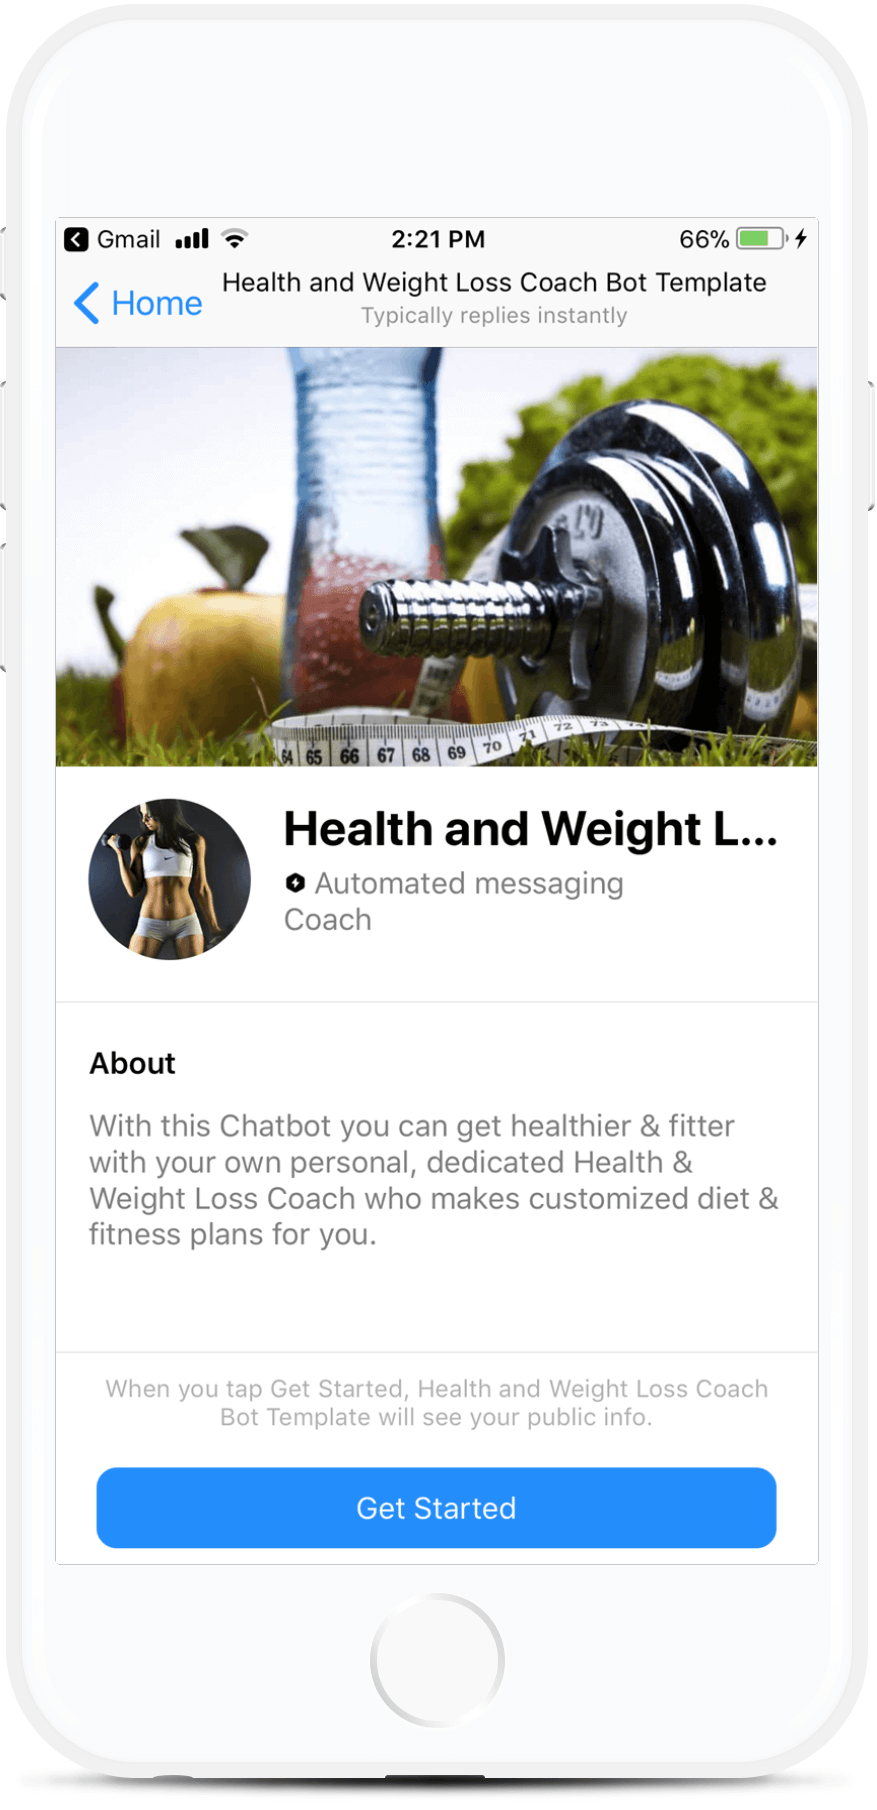 Health and Weight Loss Coach Bot Template for $79